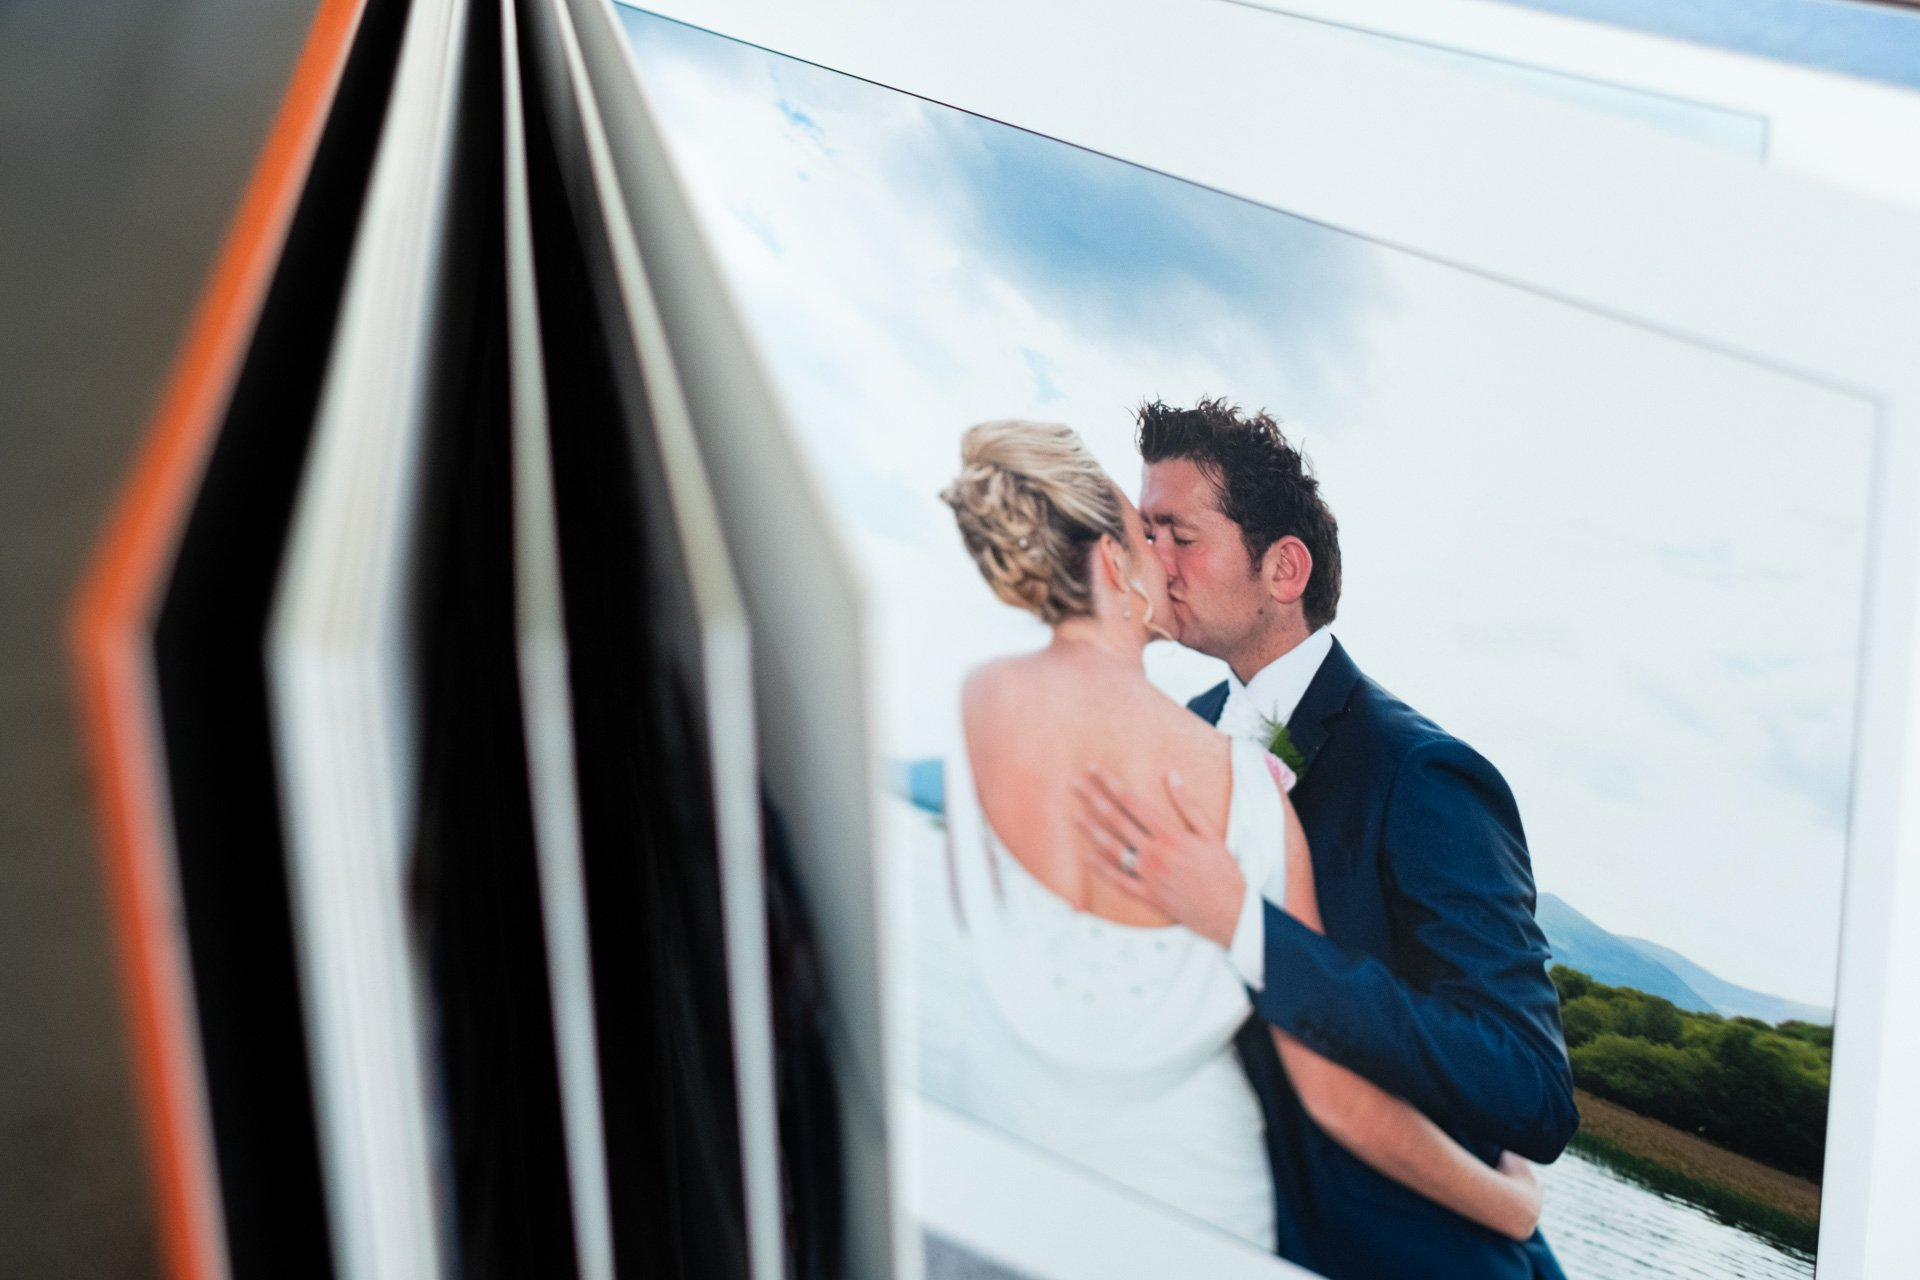 Wedding Photography Packages David Clynch Photography